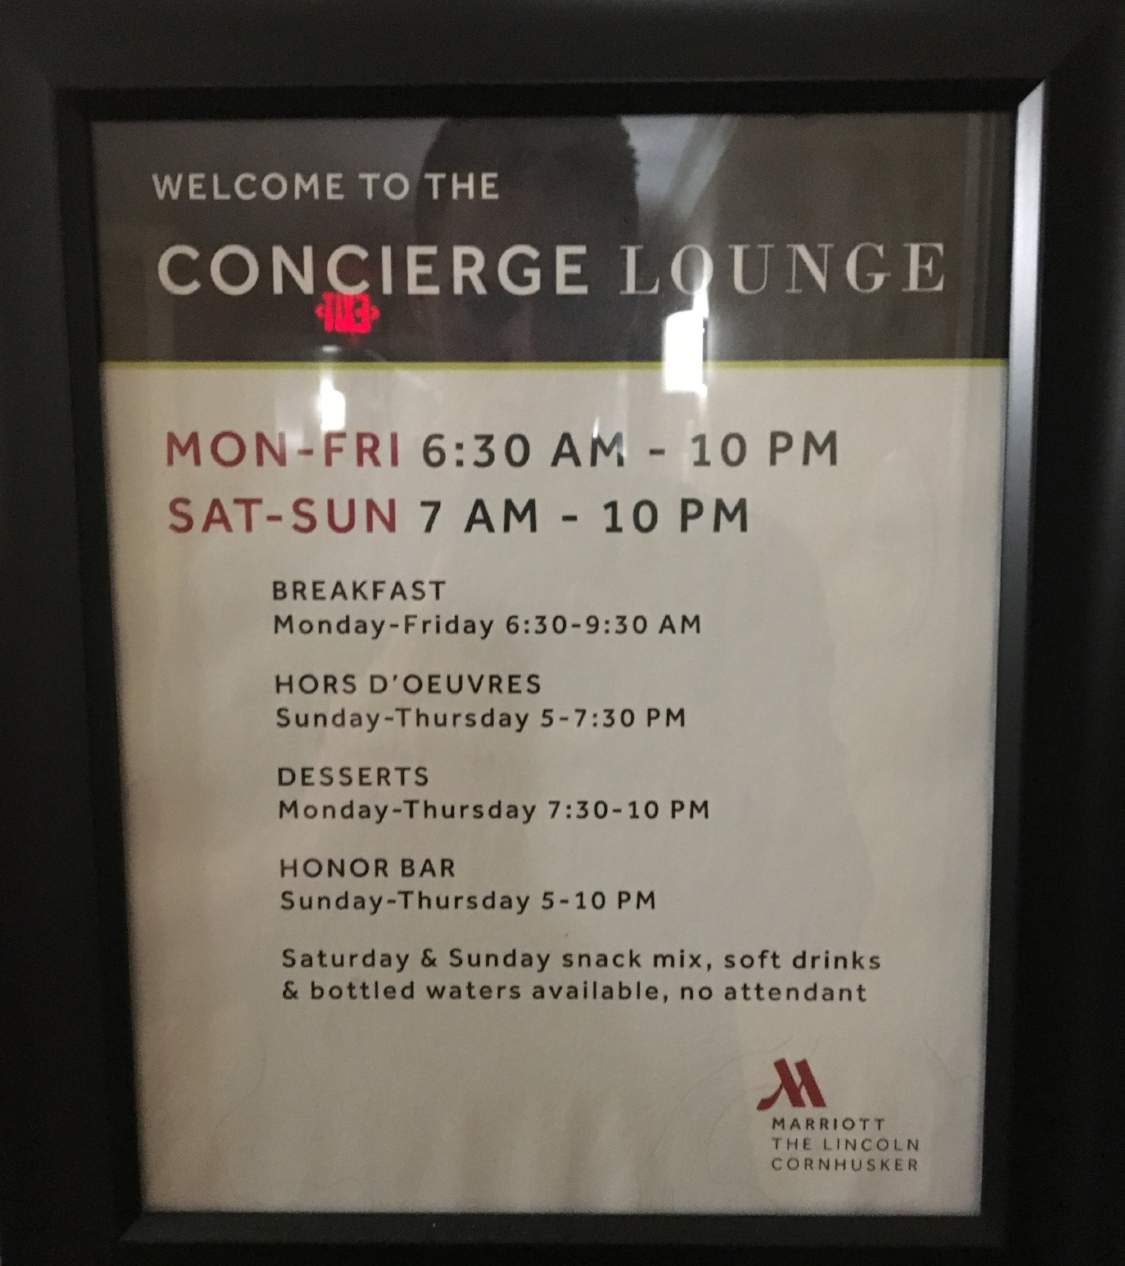 Lincoln Marriott Cornhusker Concierge's lounge